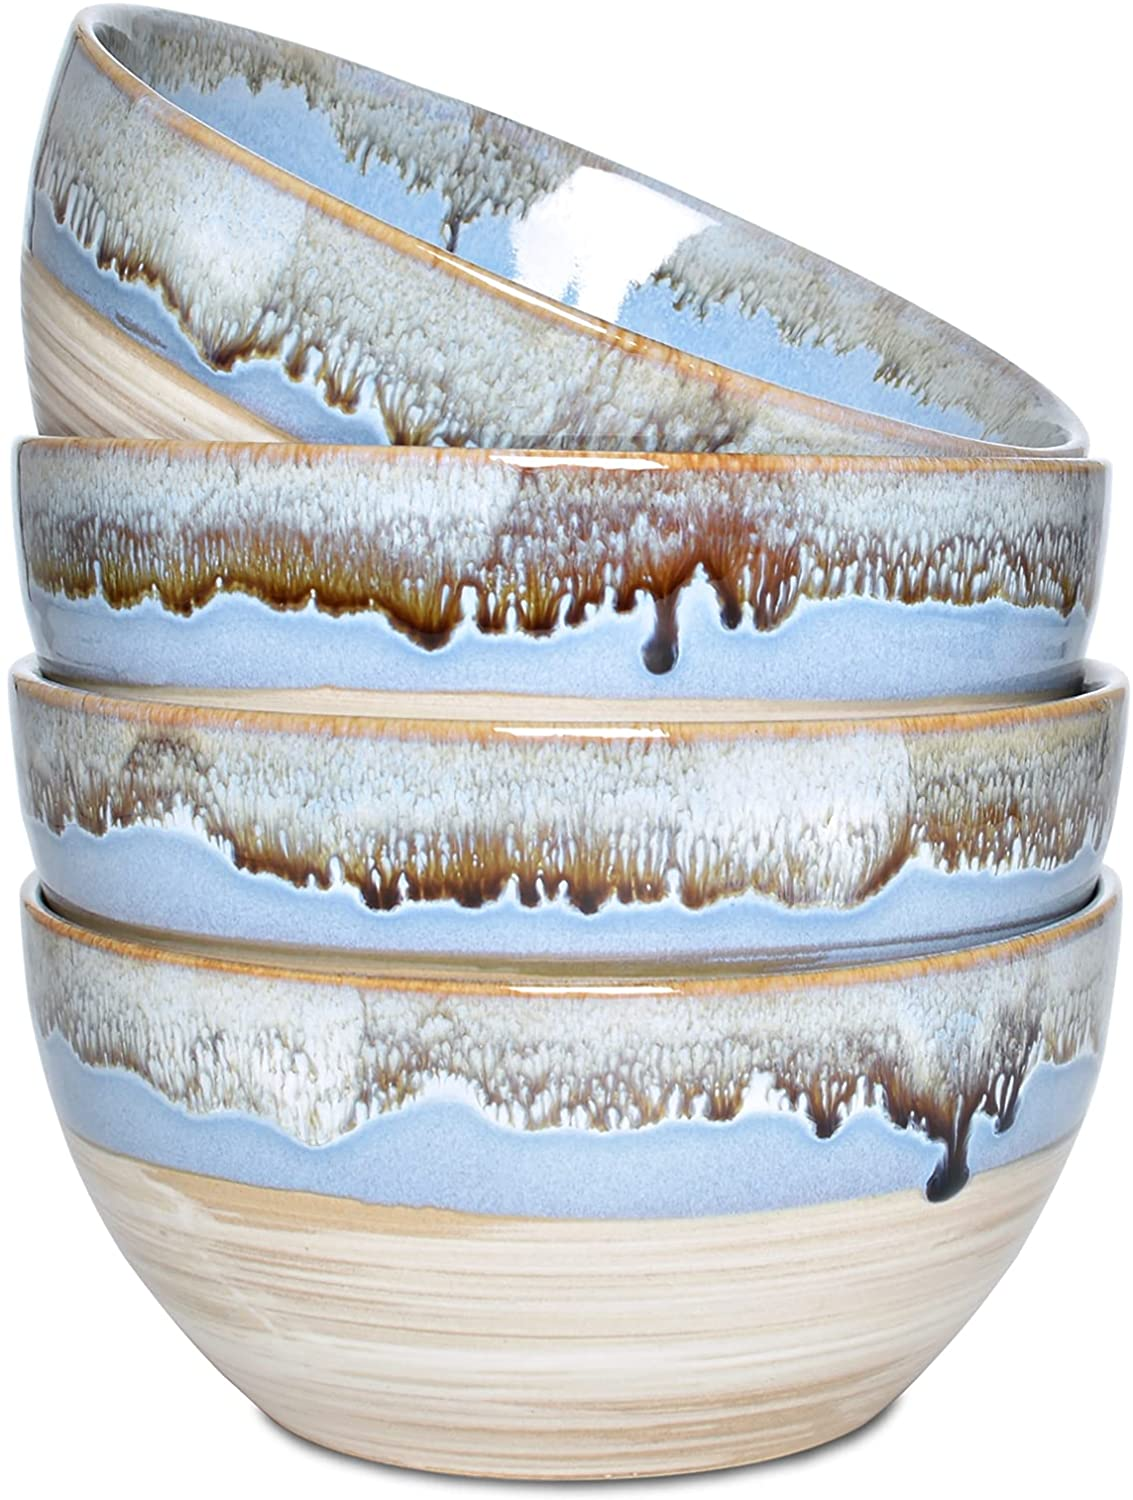 Bosmarlin Stoneware Soup Bowl Set of 4 Max 90% OFF O Oz Cereal Los Angeles Mall 26 for